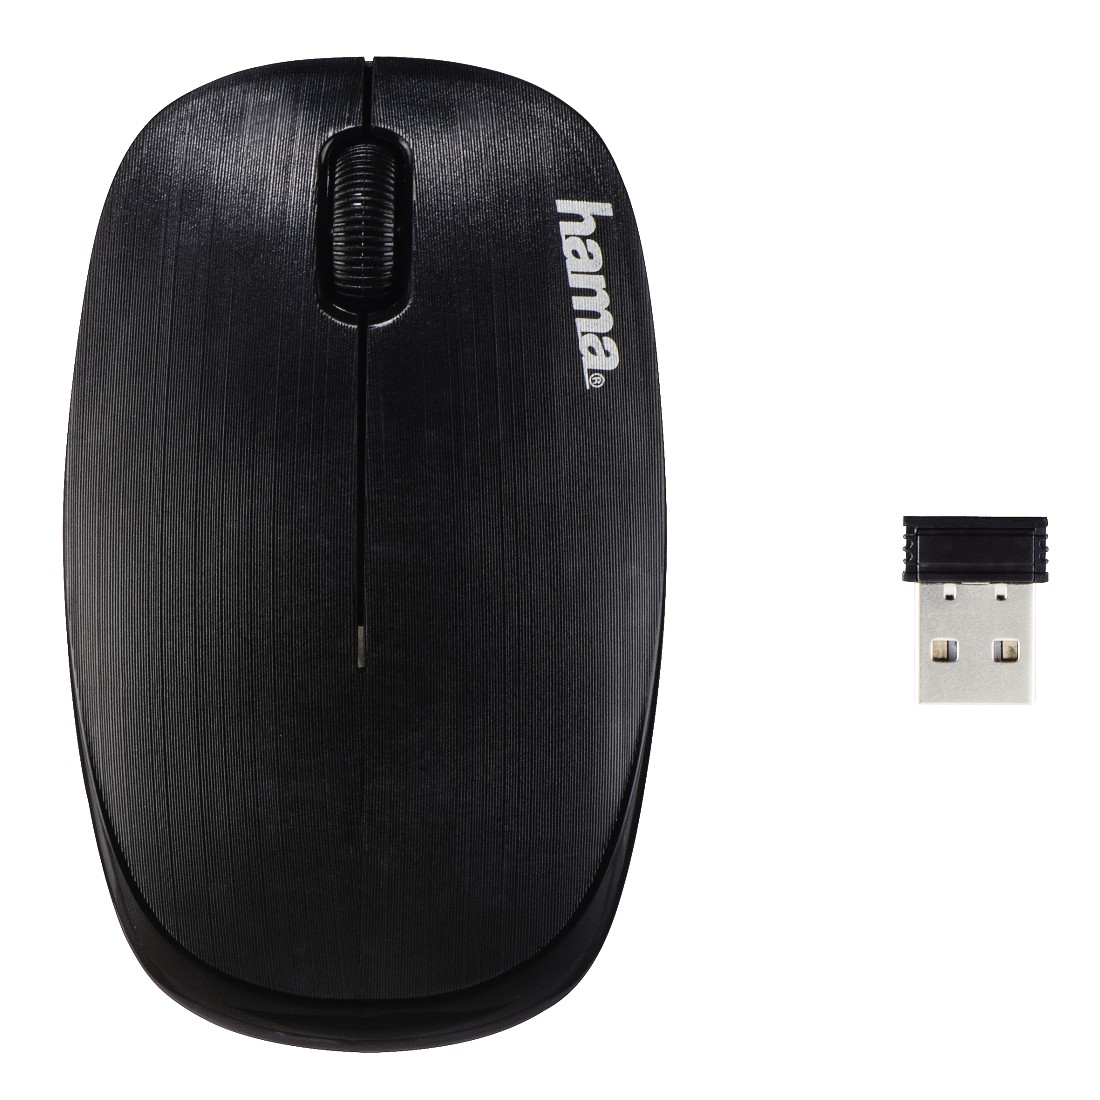 "Hama ""AM-8000"" Wireless Optical Mouse i zi"